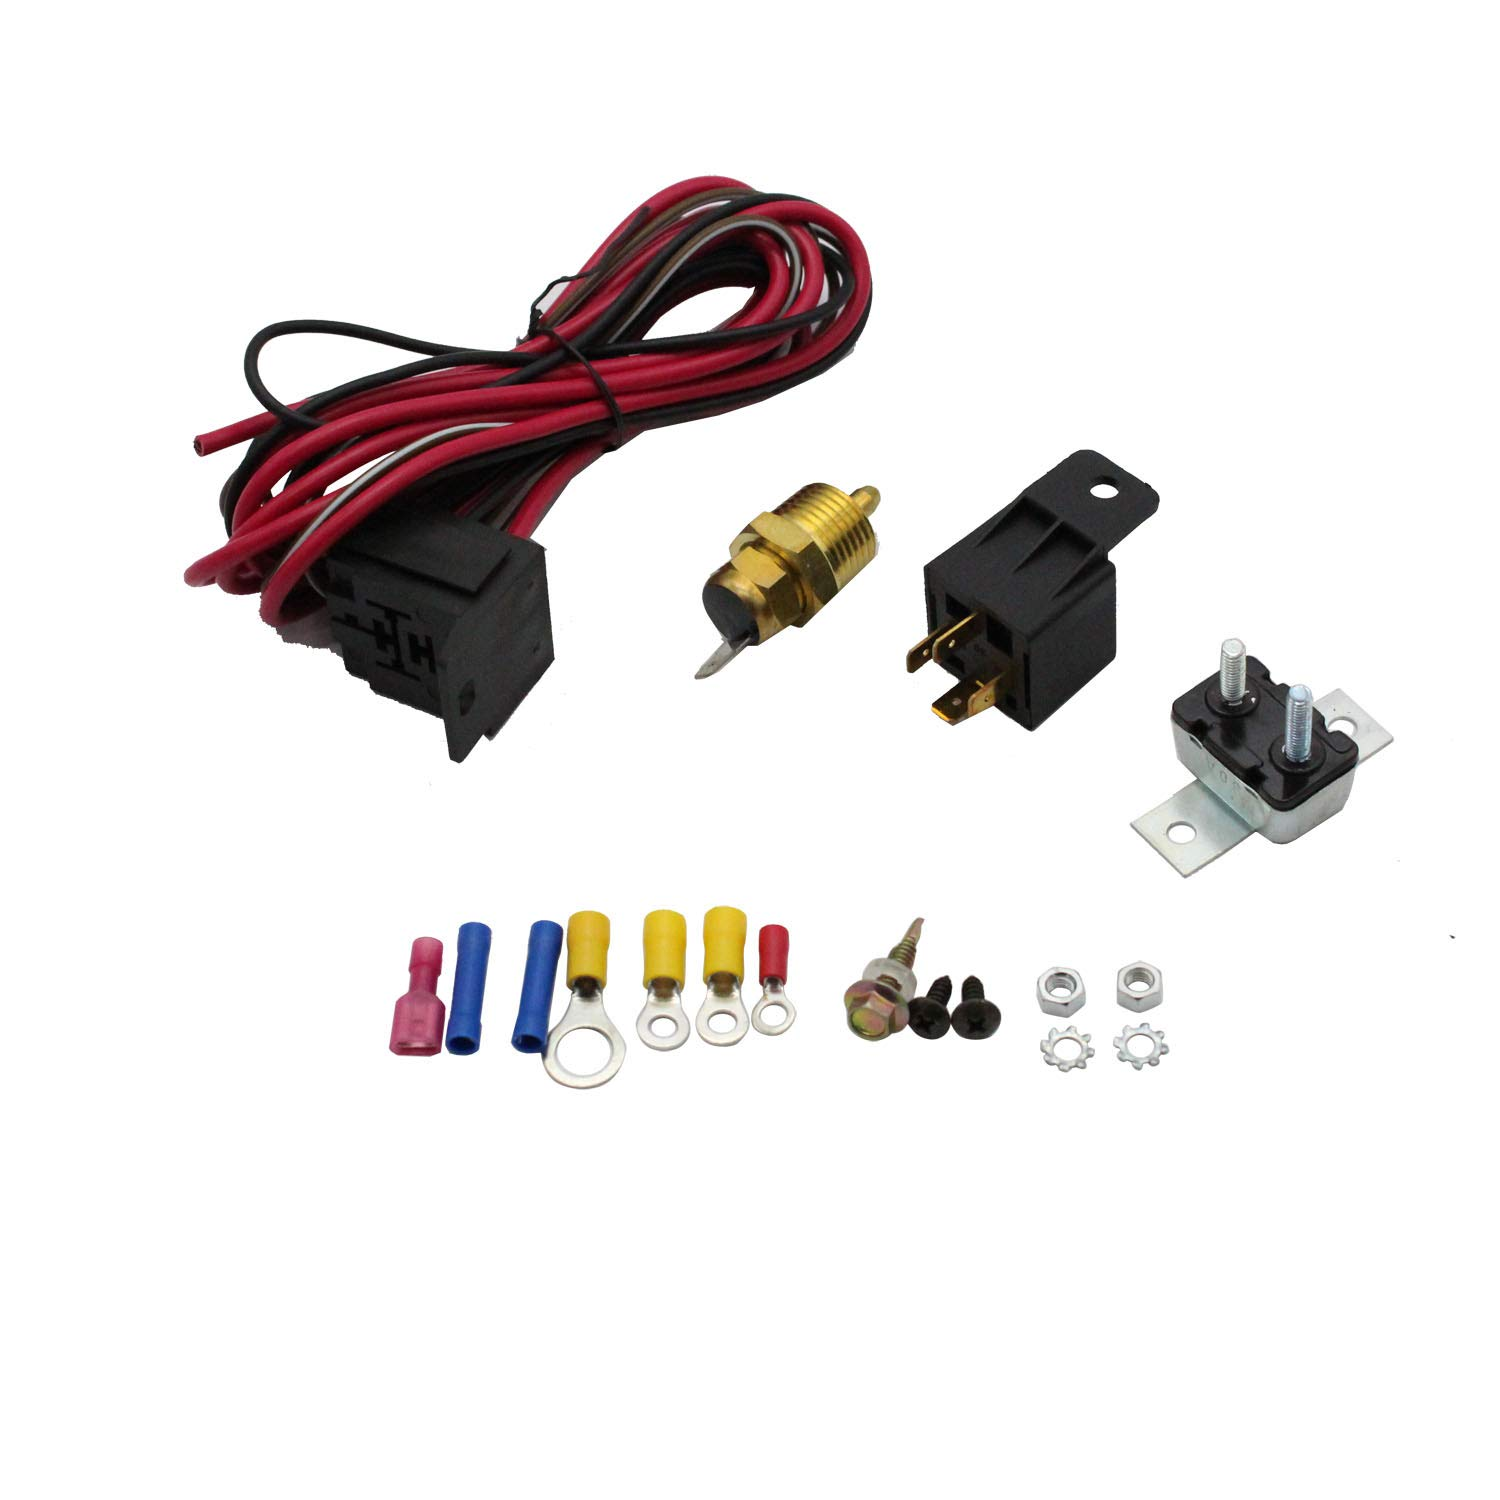 sbc thermostat wiring amazon com takpart electric fan wiring install kit 3102 complete  takpart electric fan wiring install